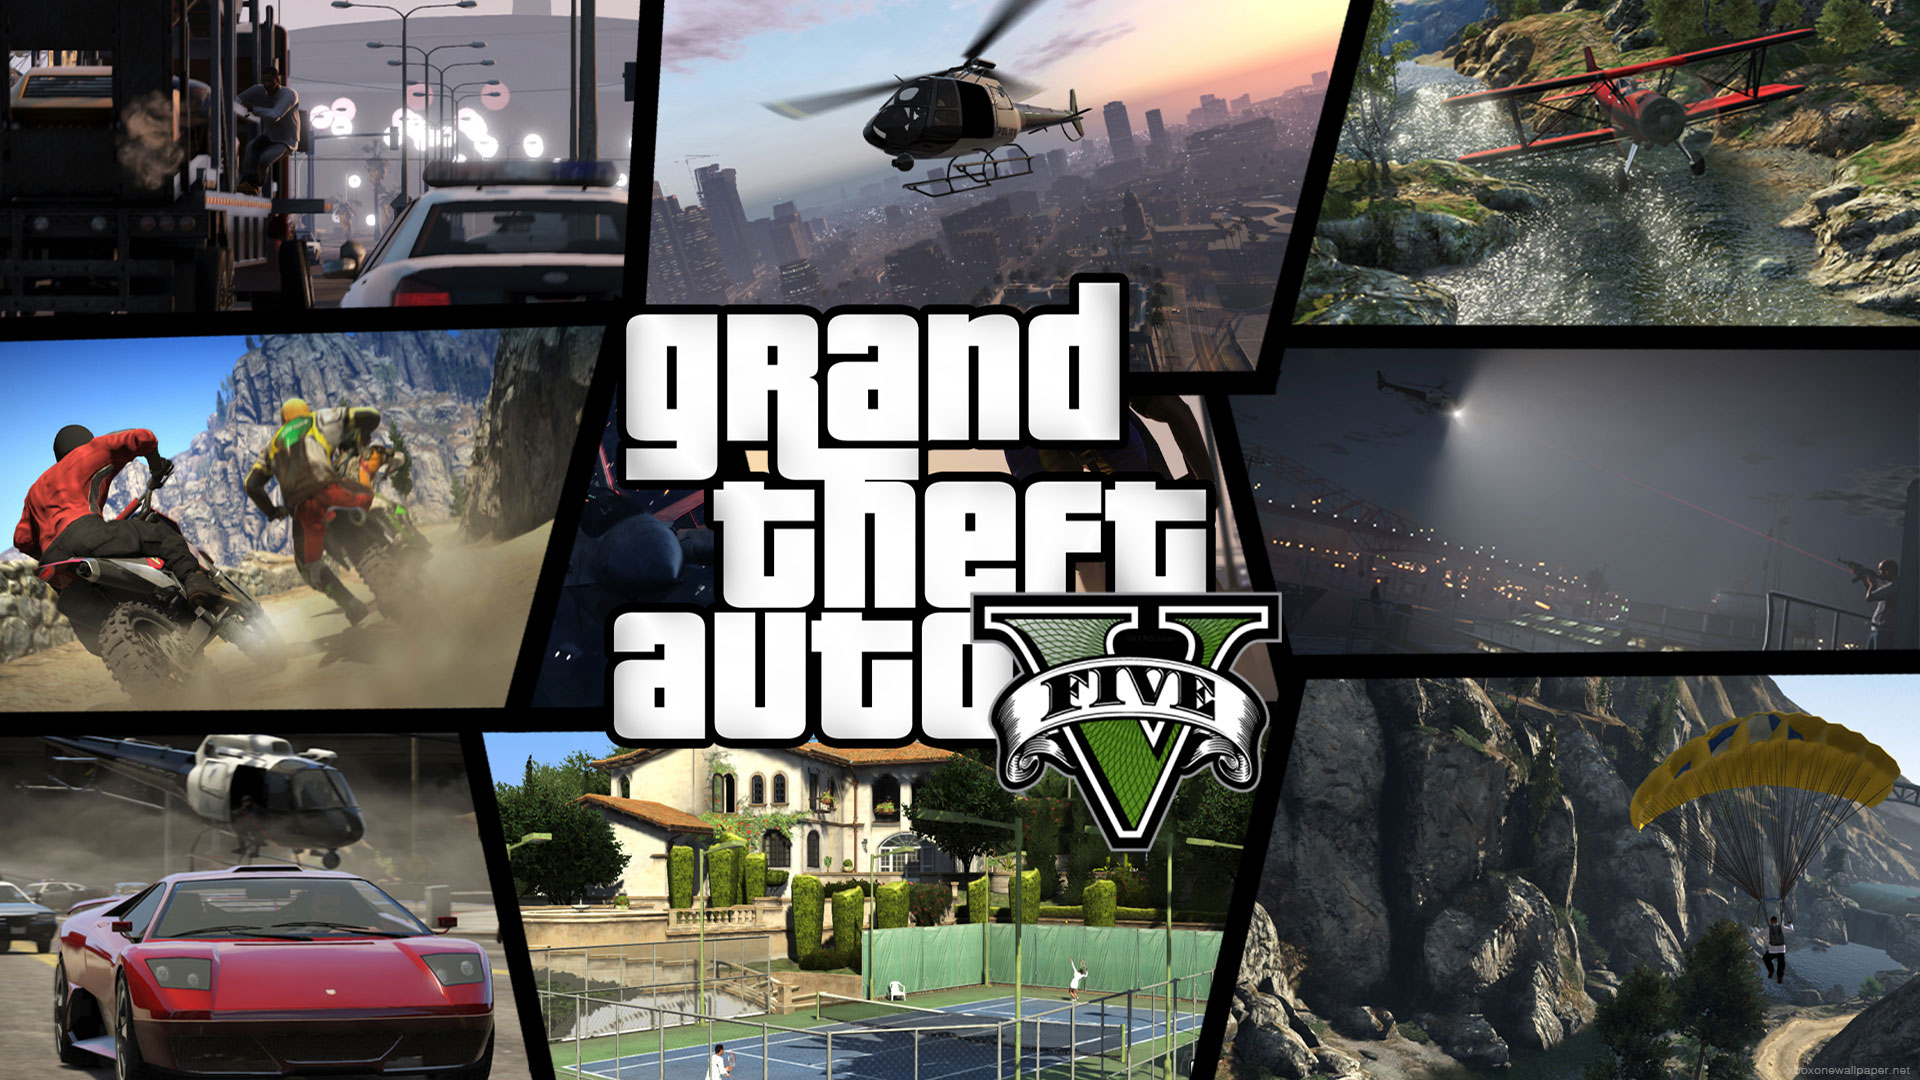 Grand theft auto v pc release possibilities vs - Gta v wallpaper ...